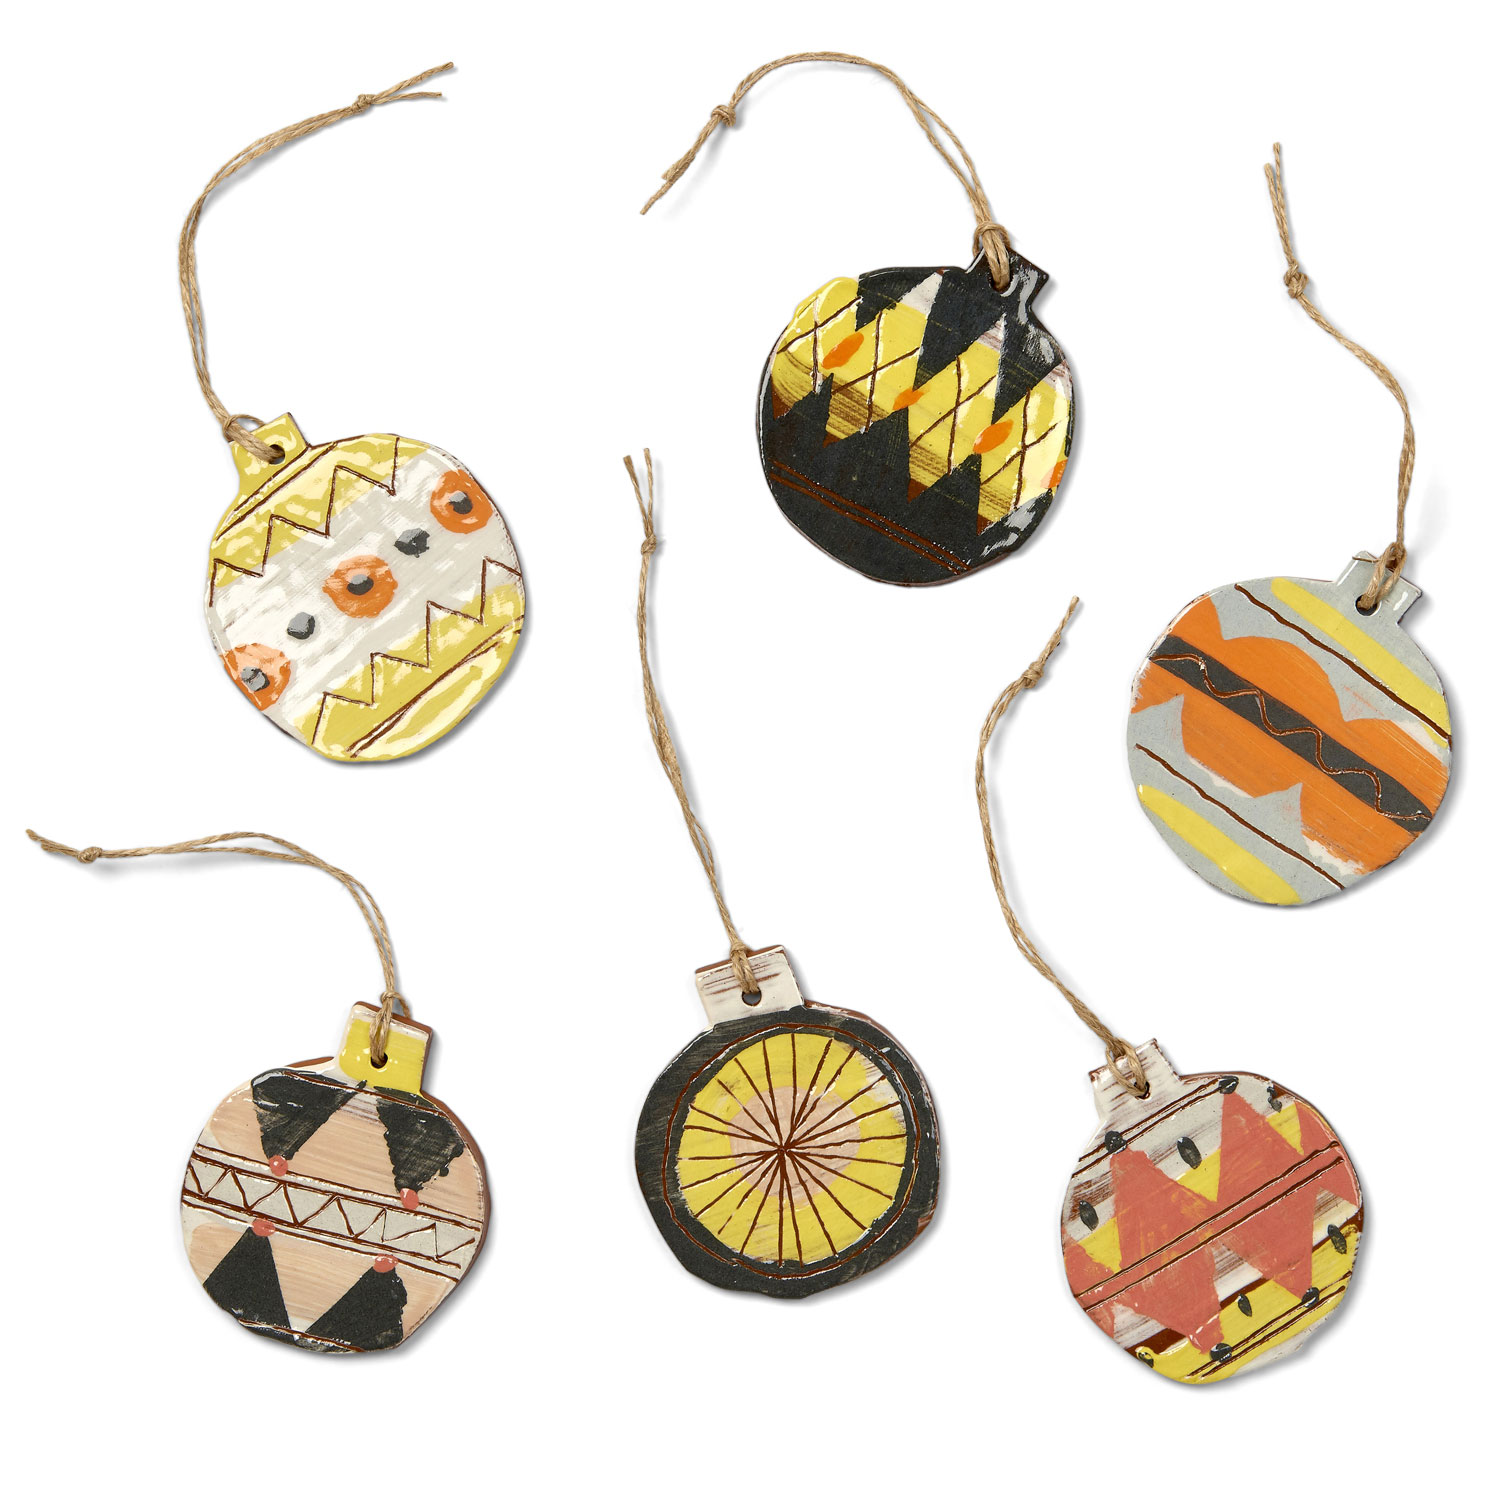 photograph of six ceramic baubles with hand painted designs in orange, yellow, brown and pink